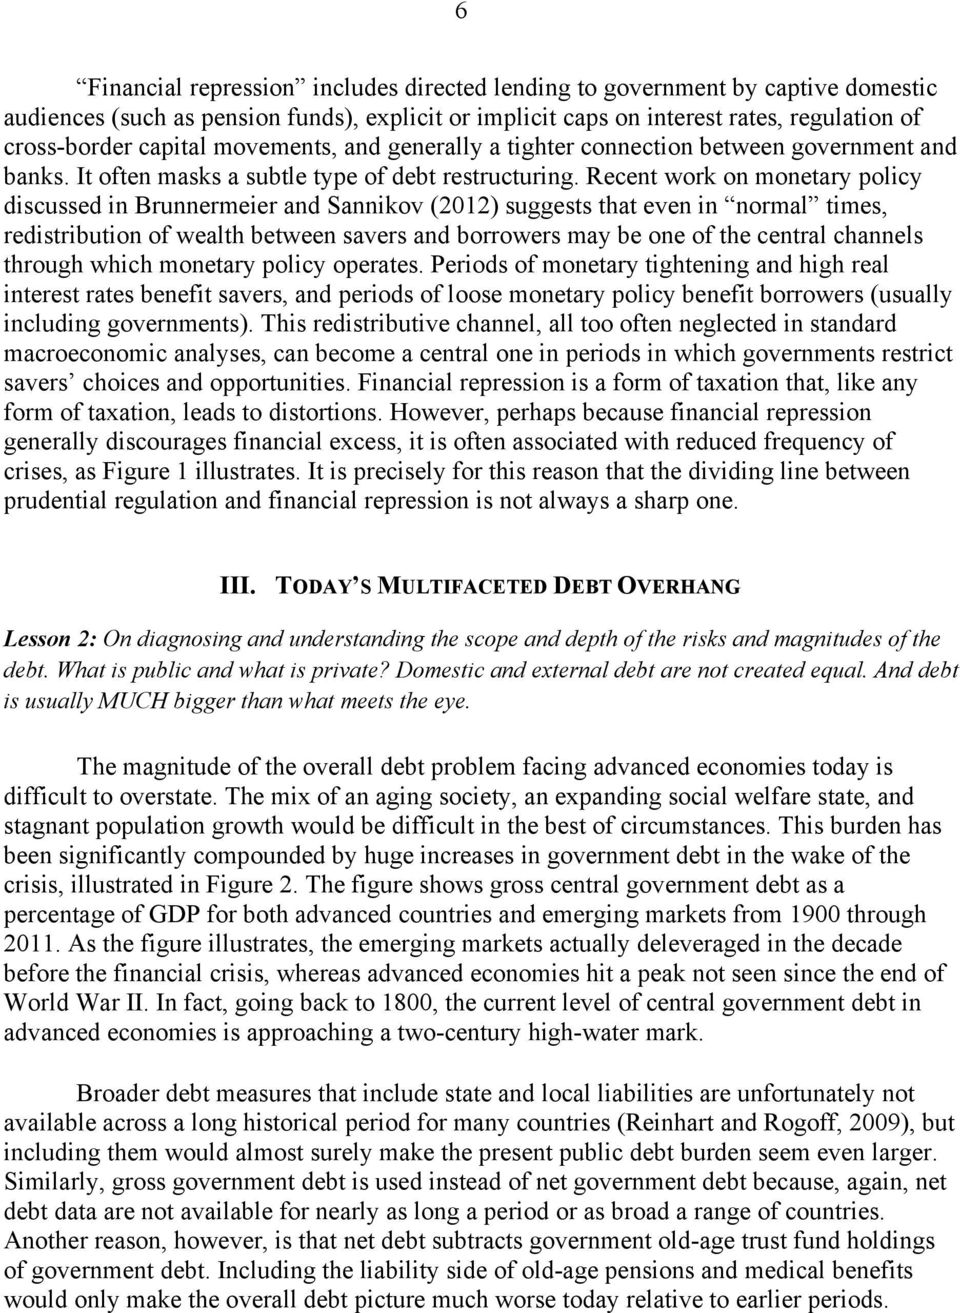 Recent work on monetary policy discussed in Brunnermeier and Sannikov (2012) suggests that even in normal times, redistribution of wealth between savers and borrowers may be one of the central